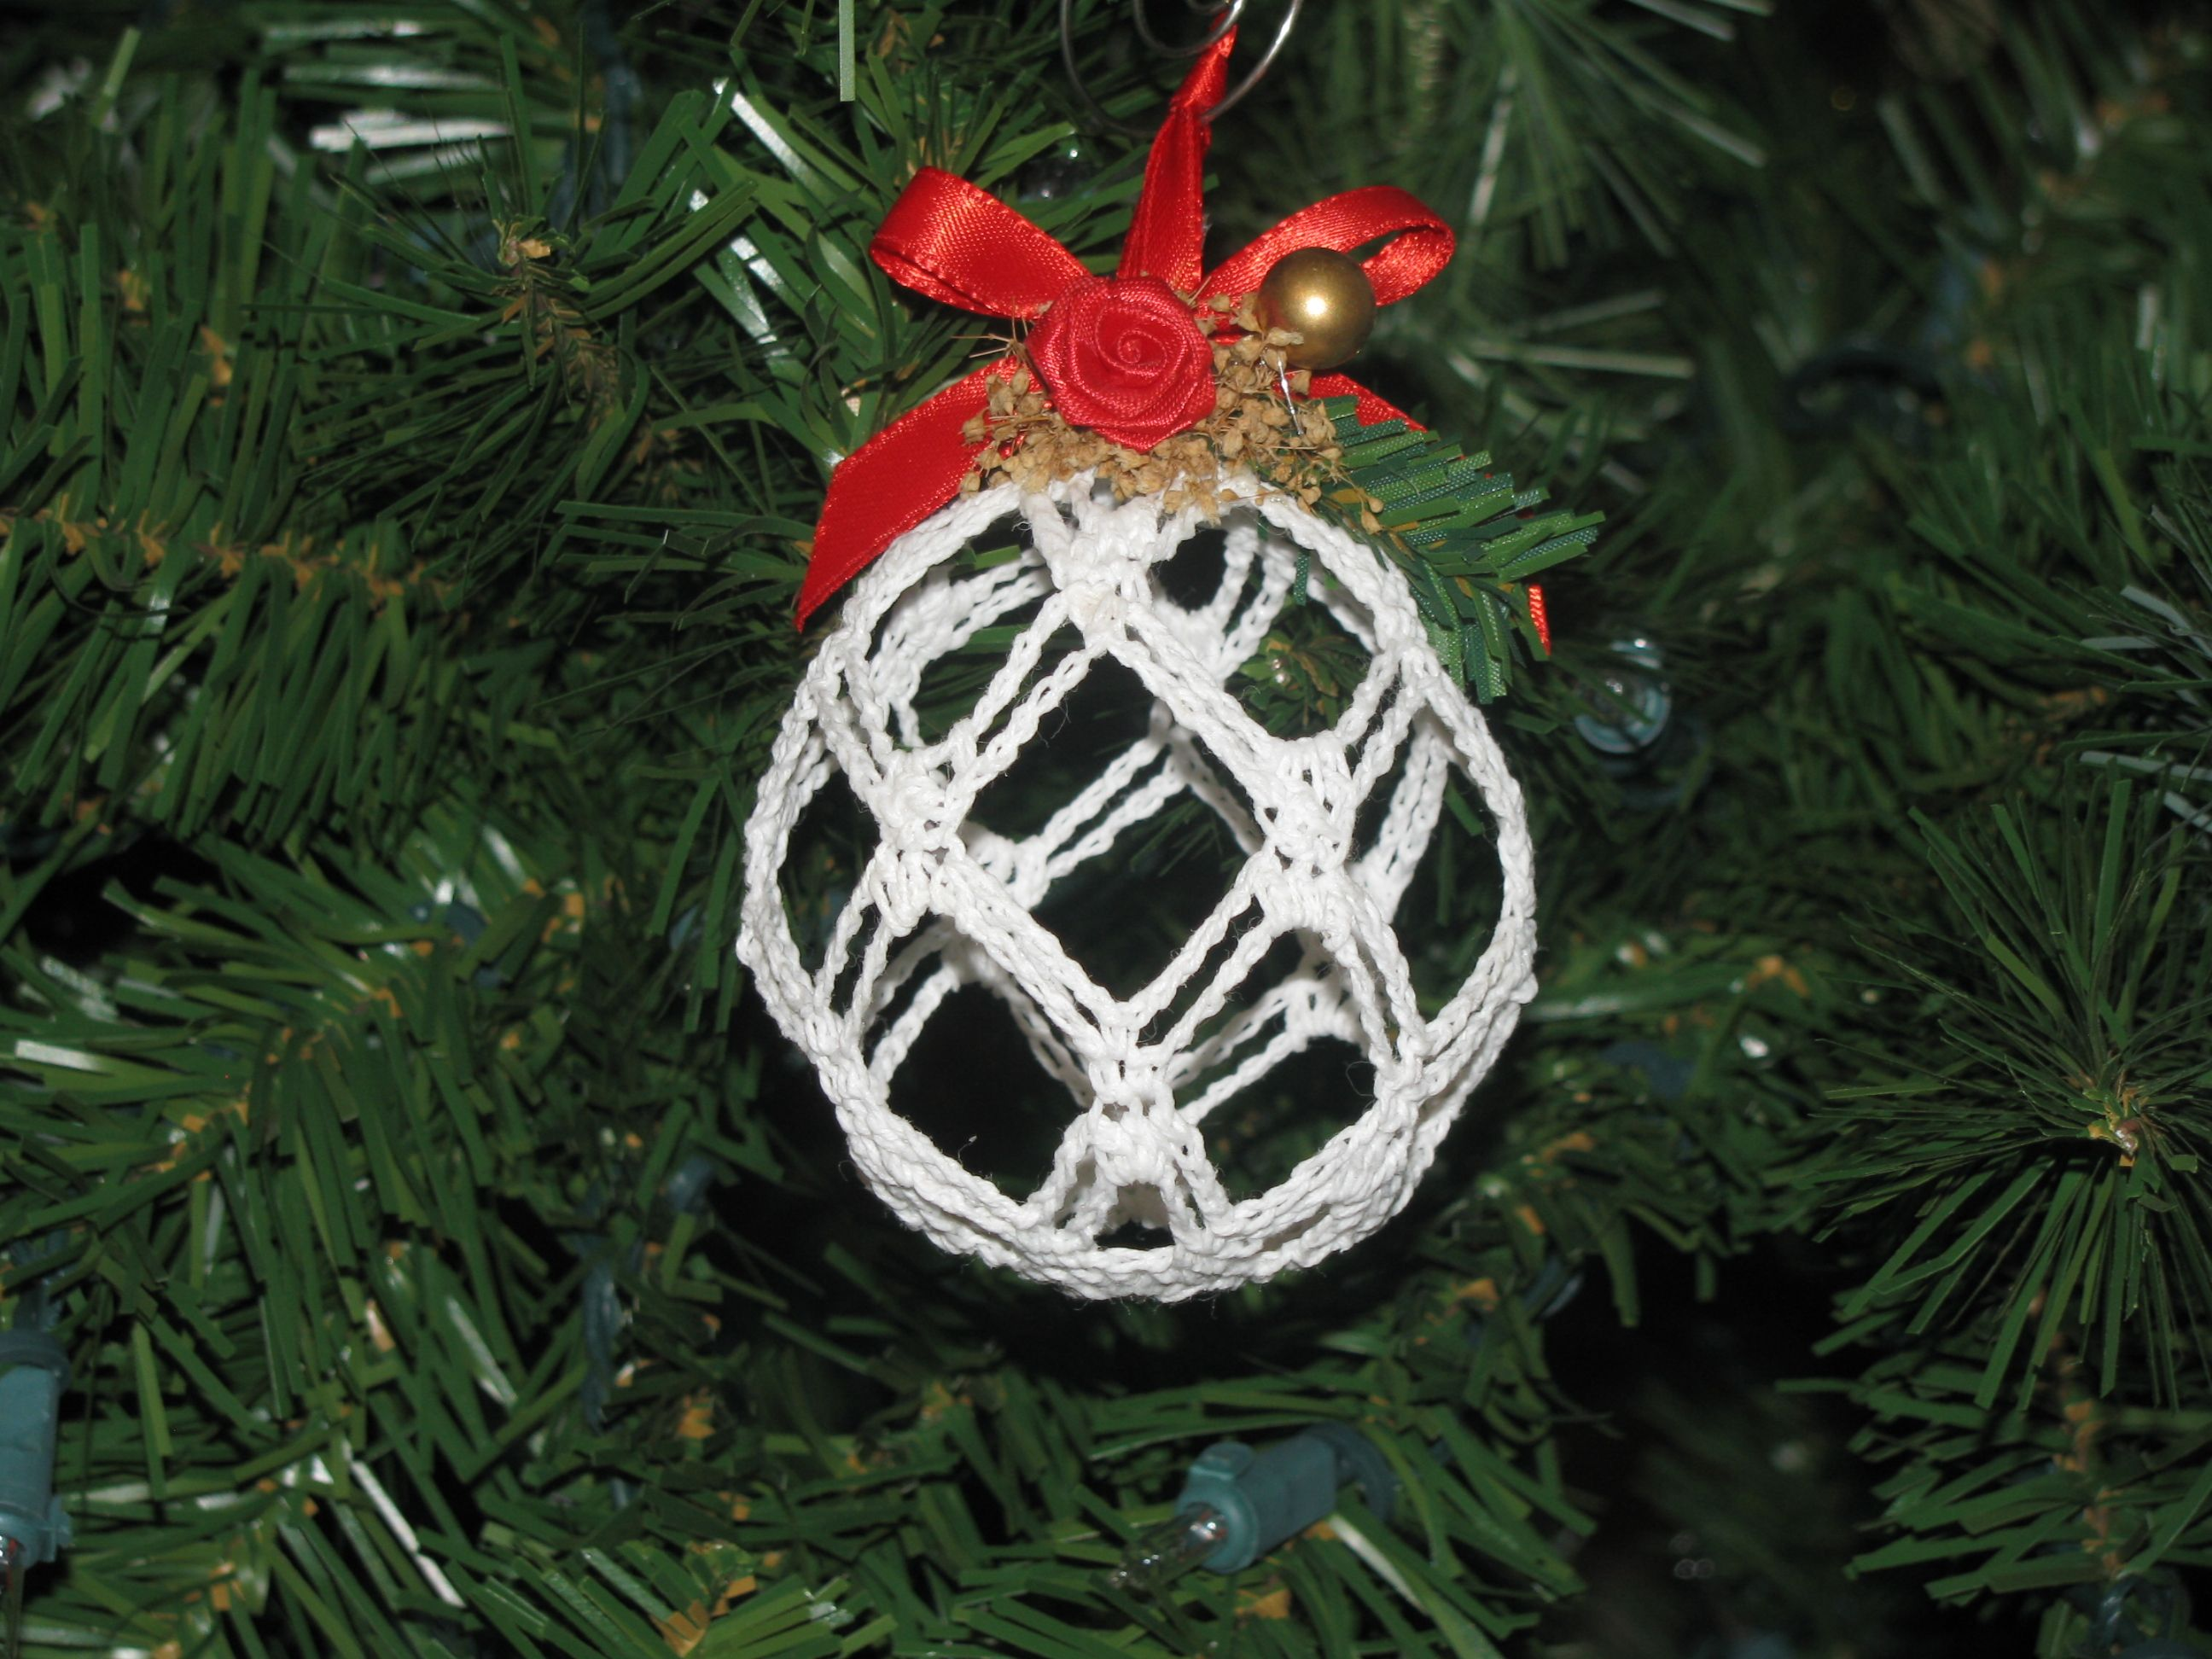 Large Open Work Pattern Of One Of The Handmade Crocheted Christmas Ornaments De Christmas Ornaments Traditional Christmas Ornament Crochet Christmas Ornaments